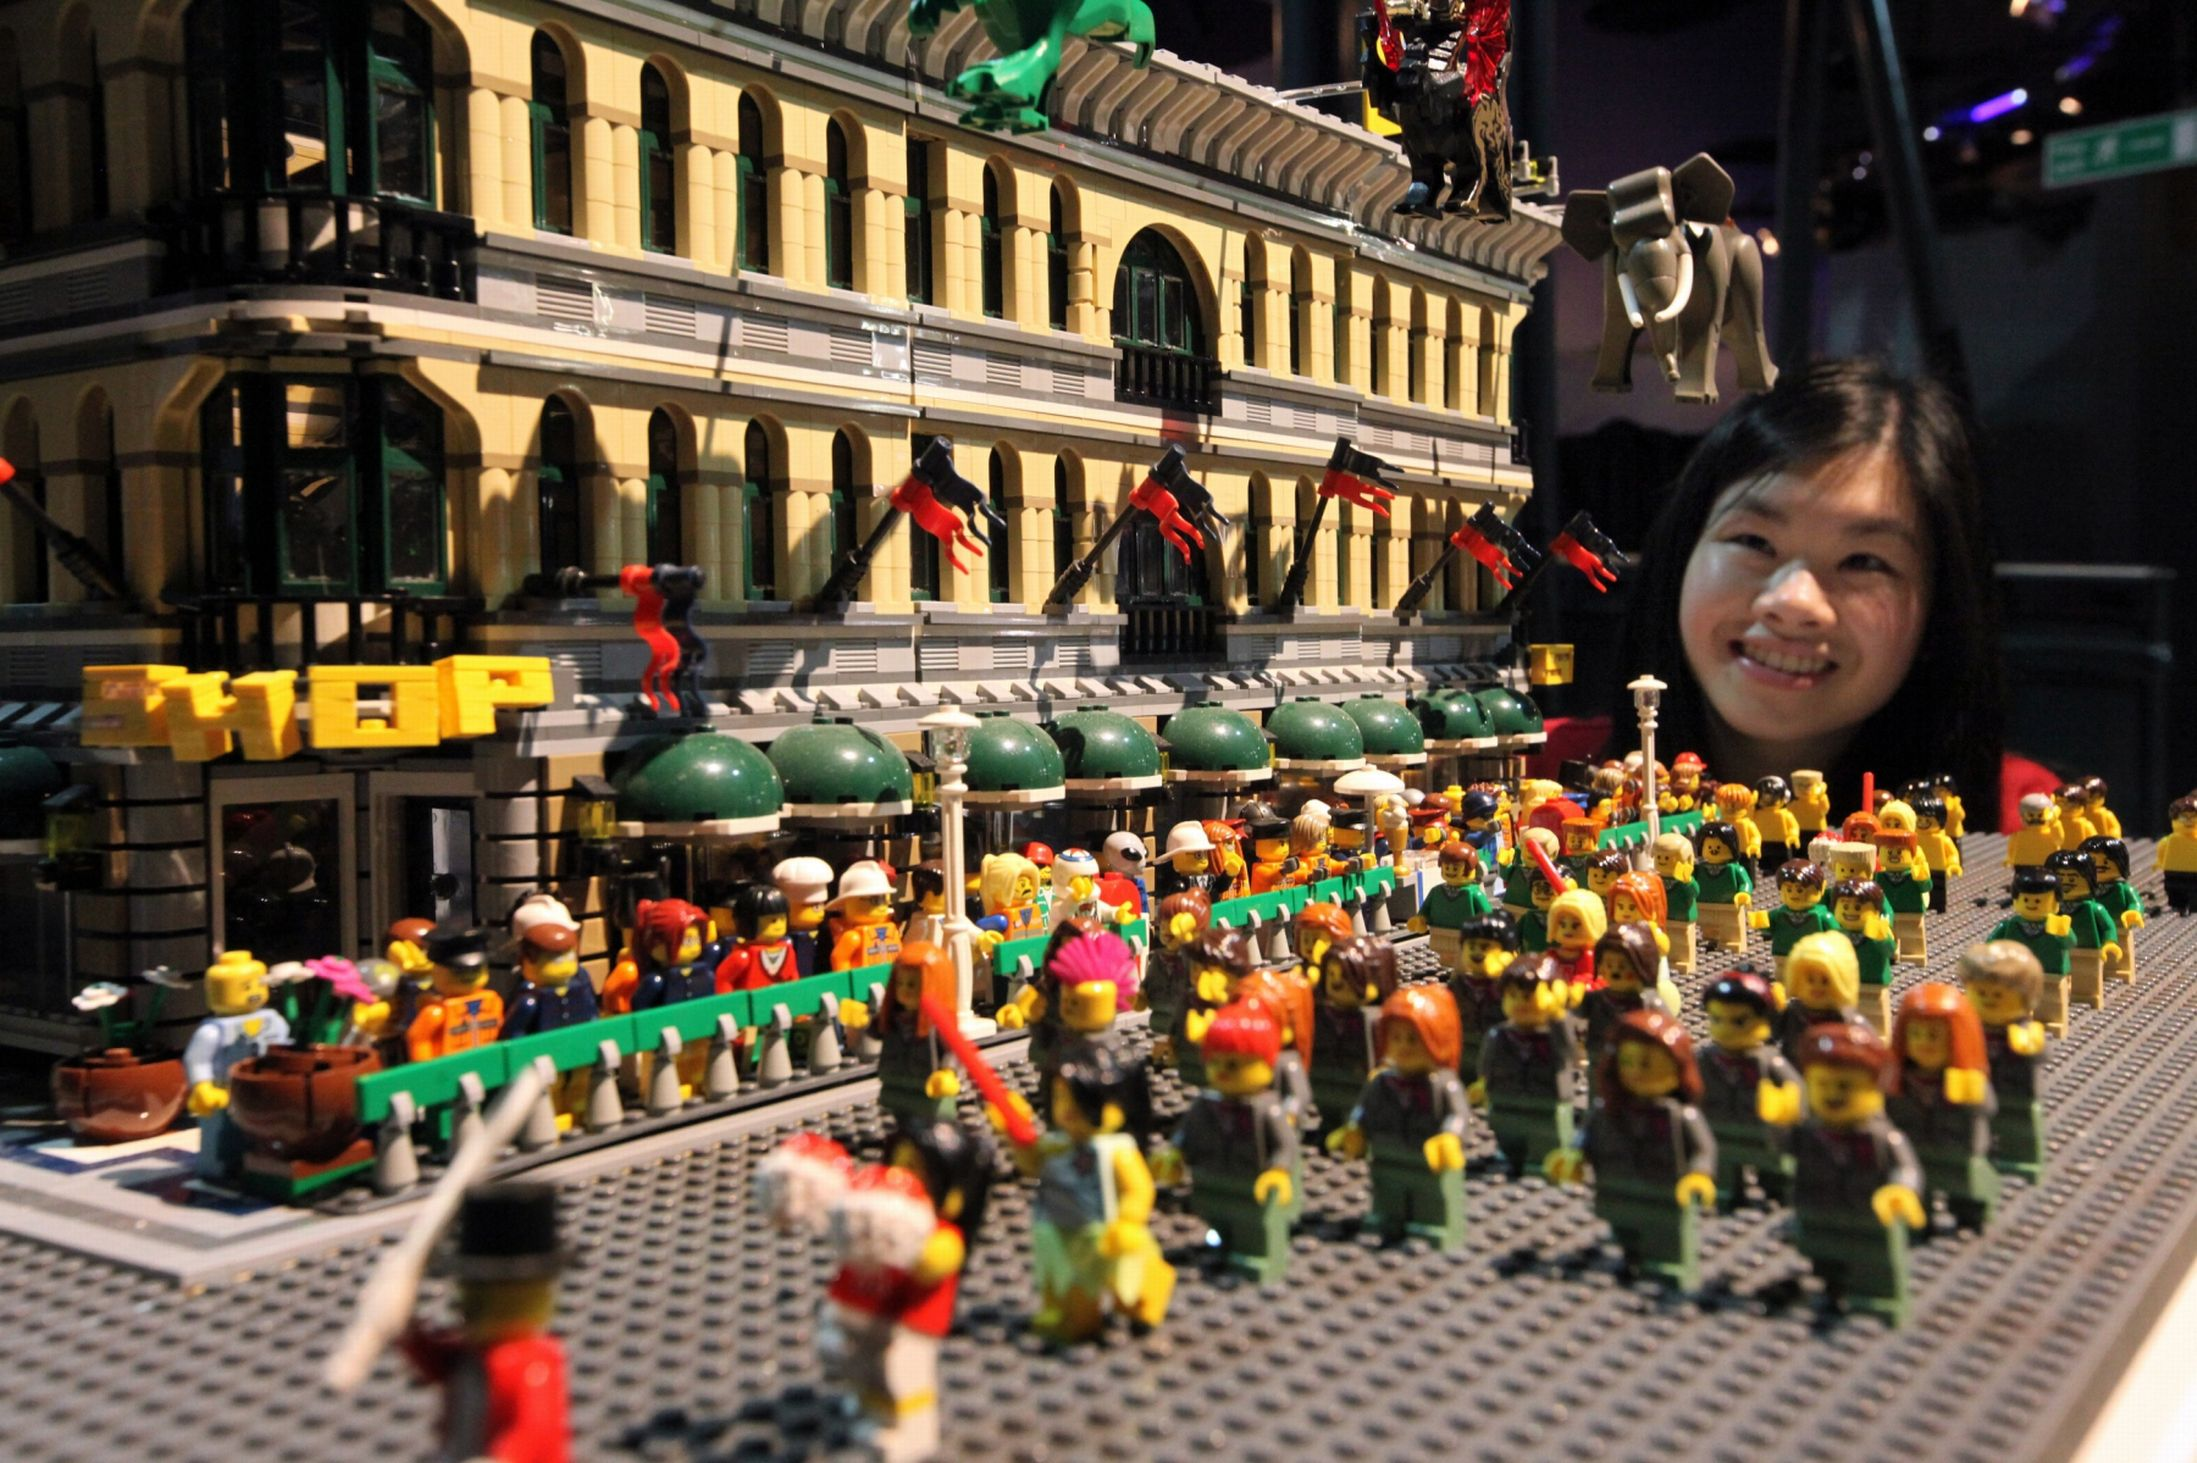 Lego Brick City on show in Newcastle